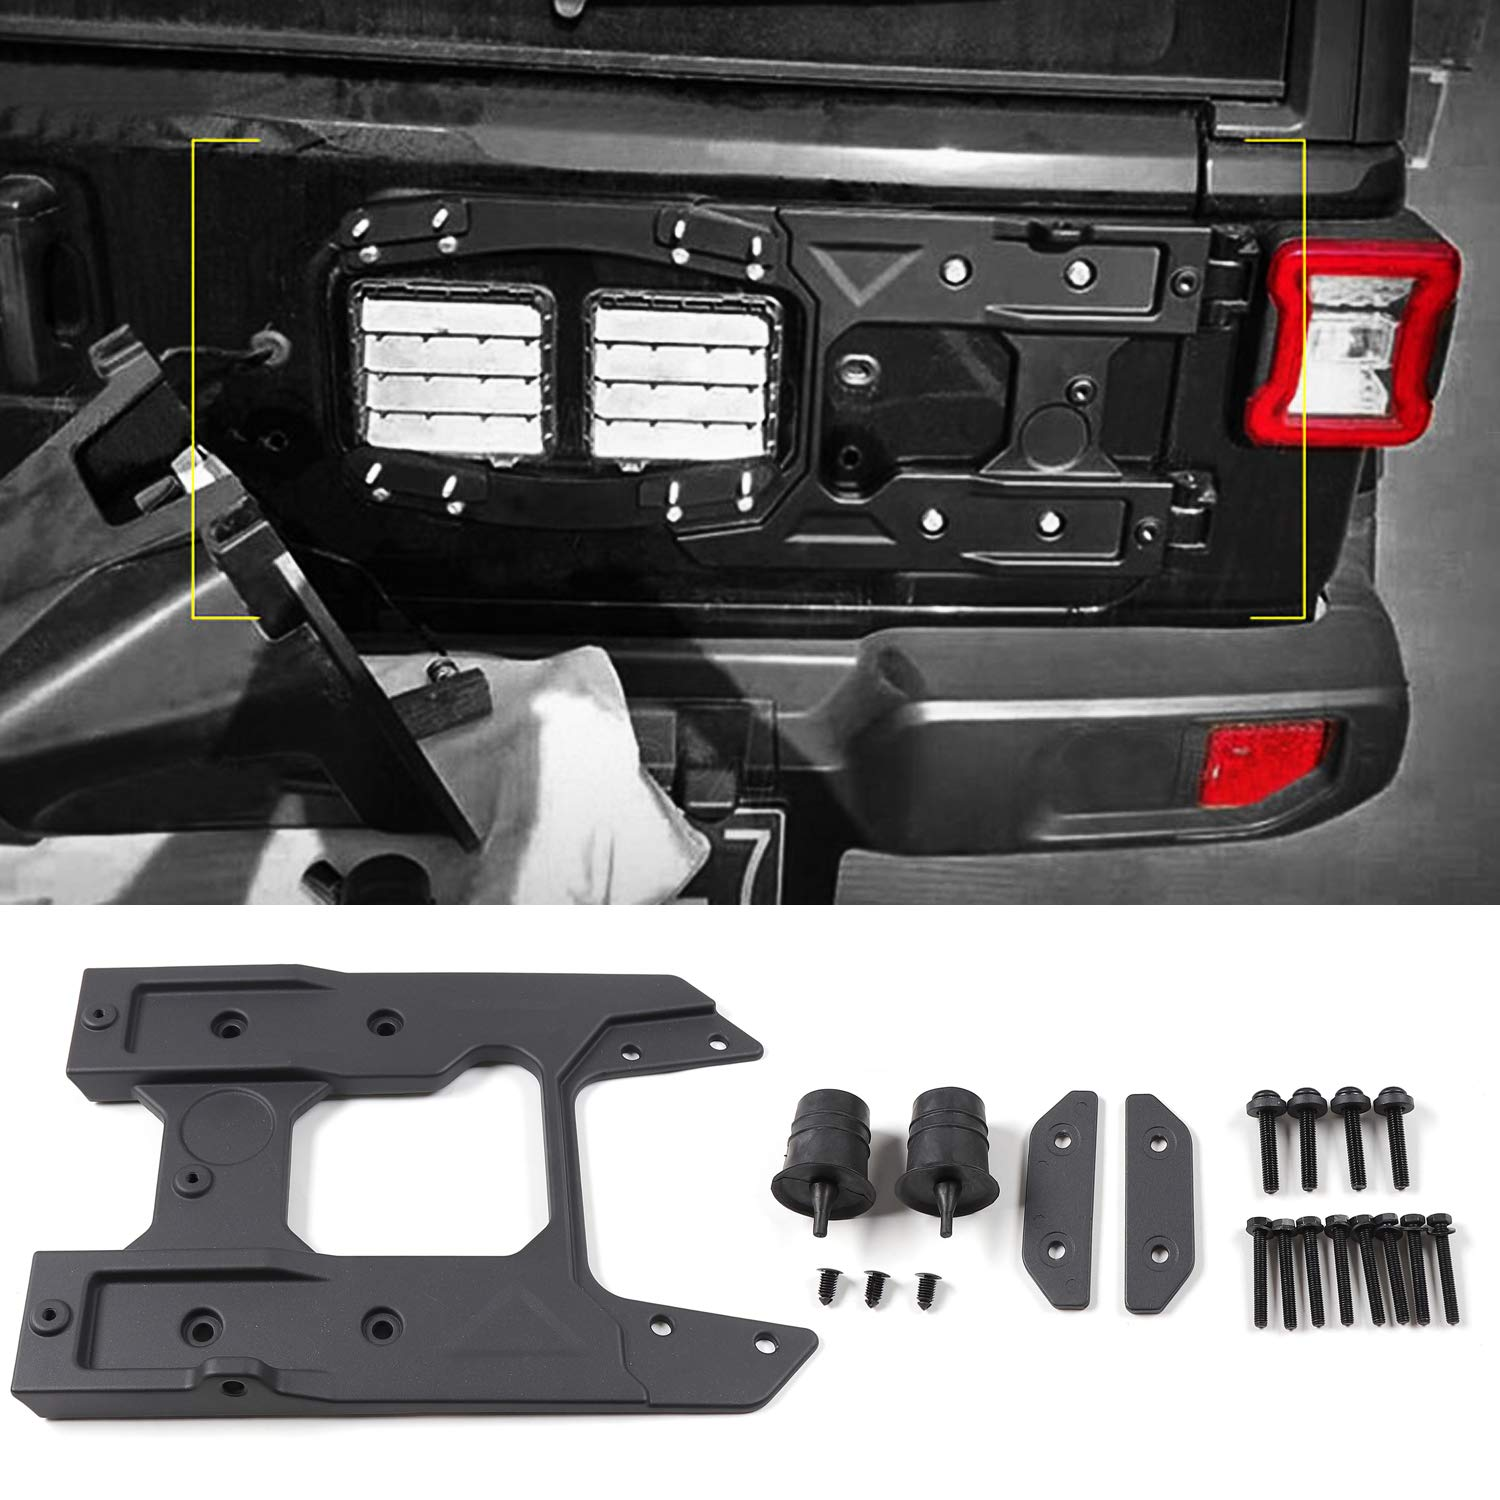 RT-TCZ for Jeep Wrangler JL Oversized Enhance Spare Tire Mounting Bracket Kit Jeep JL Accessories for 2018-2020